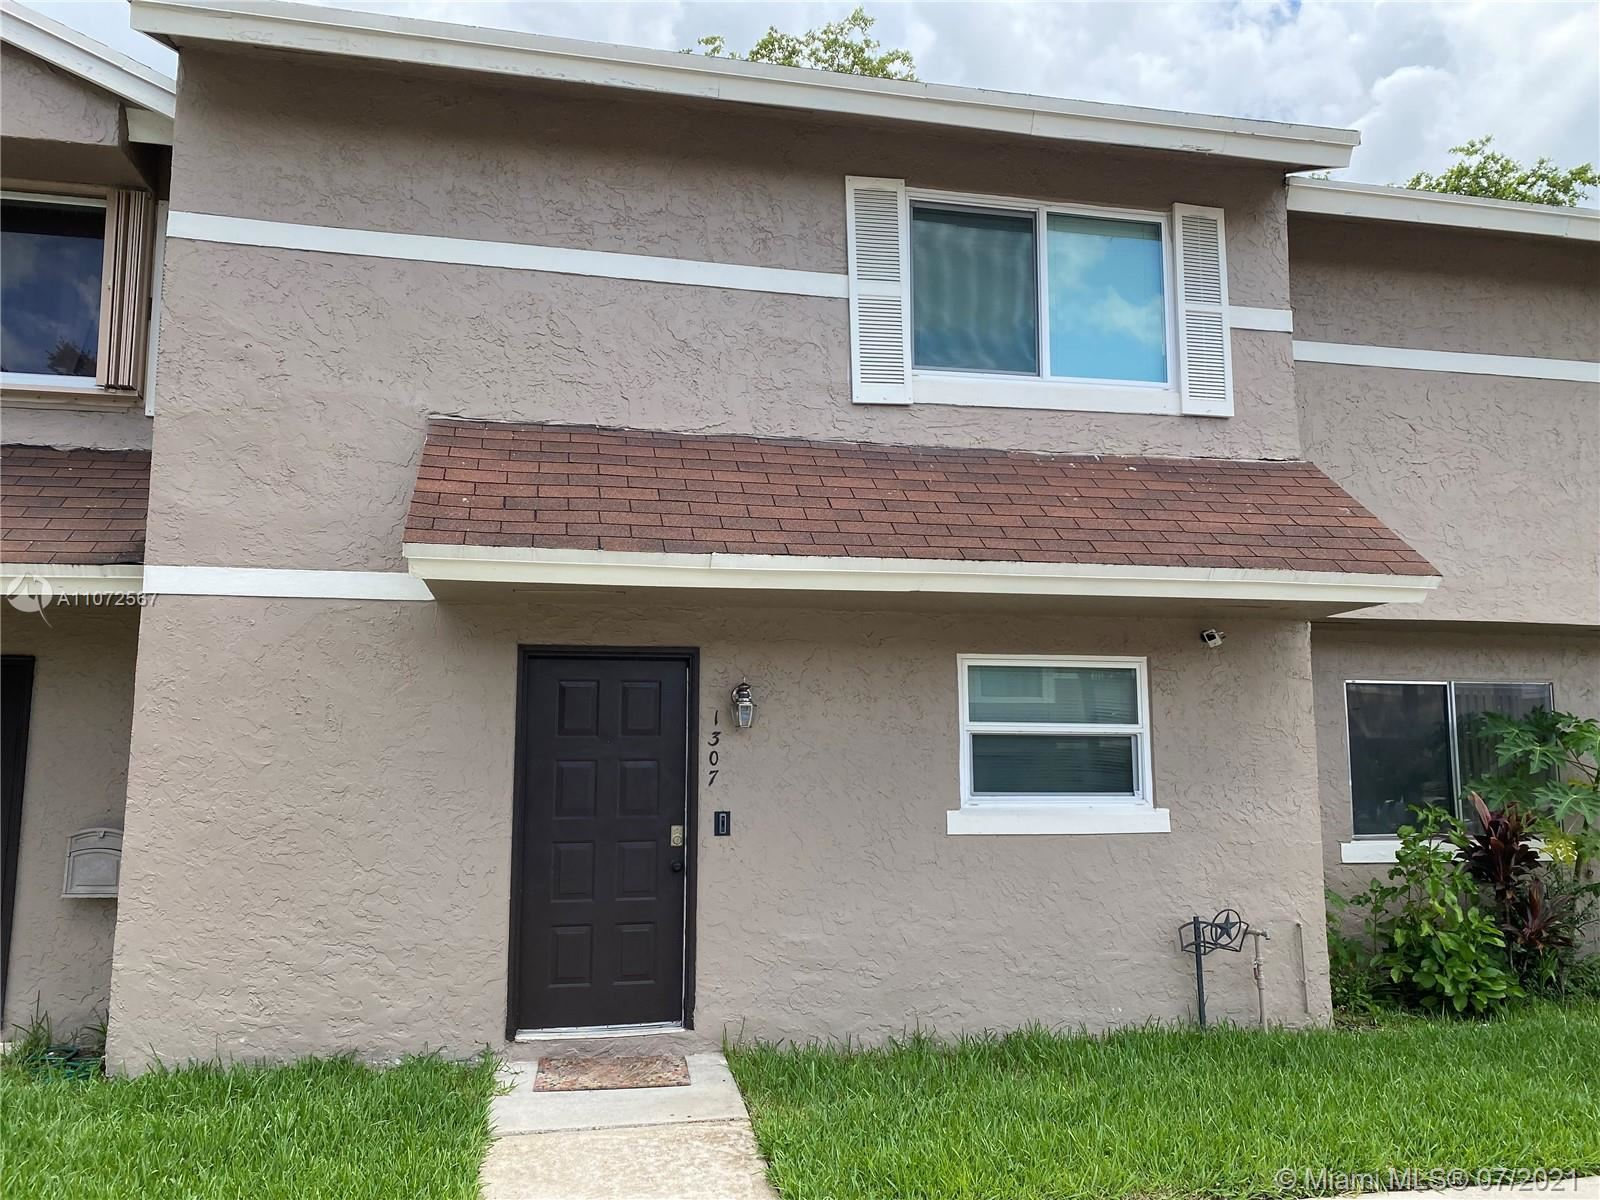 Photo of 1307 Sussex Dr #1307, North Lauderdale, FL 33068 (MLS # A11072567)